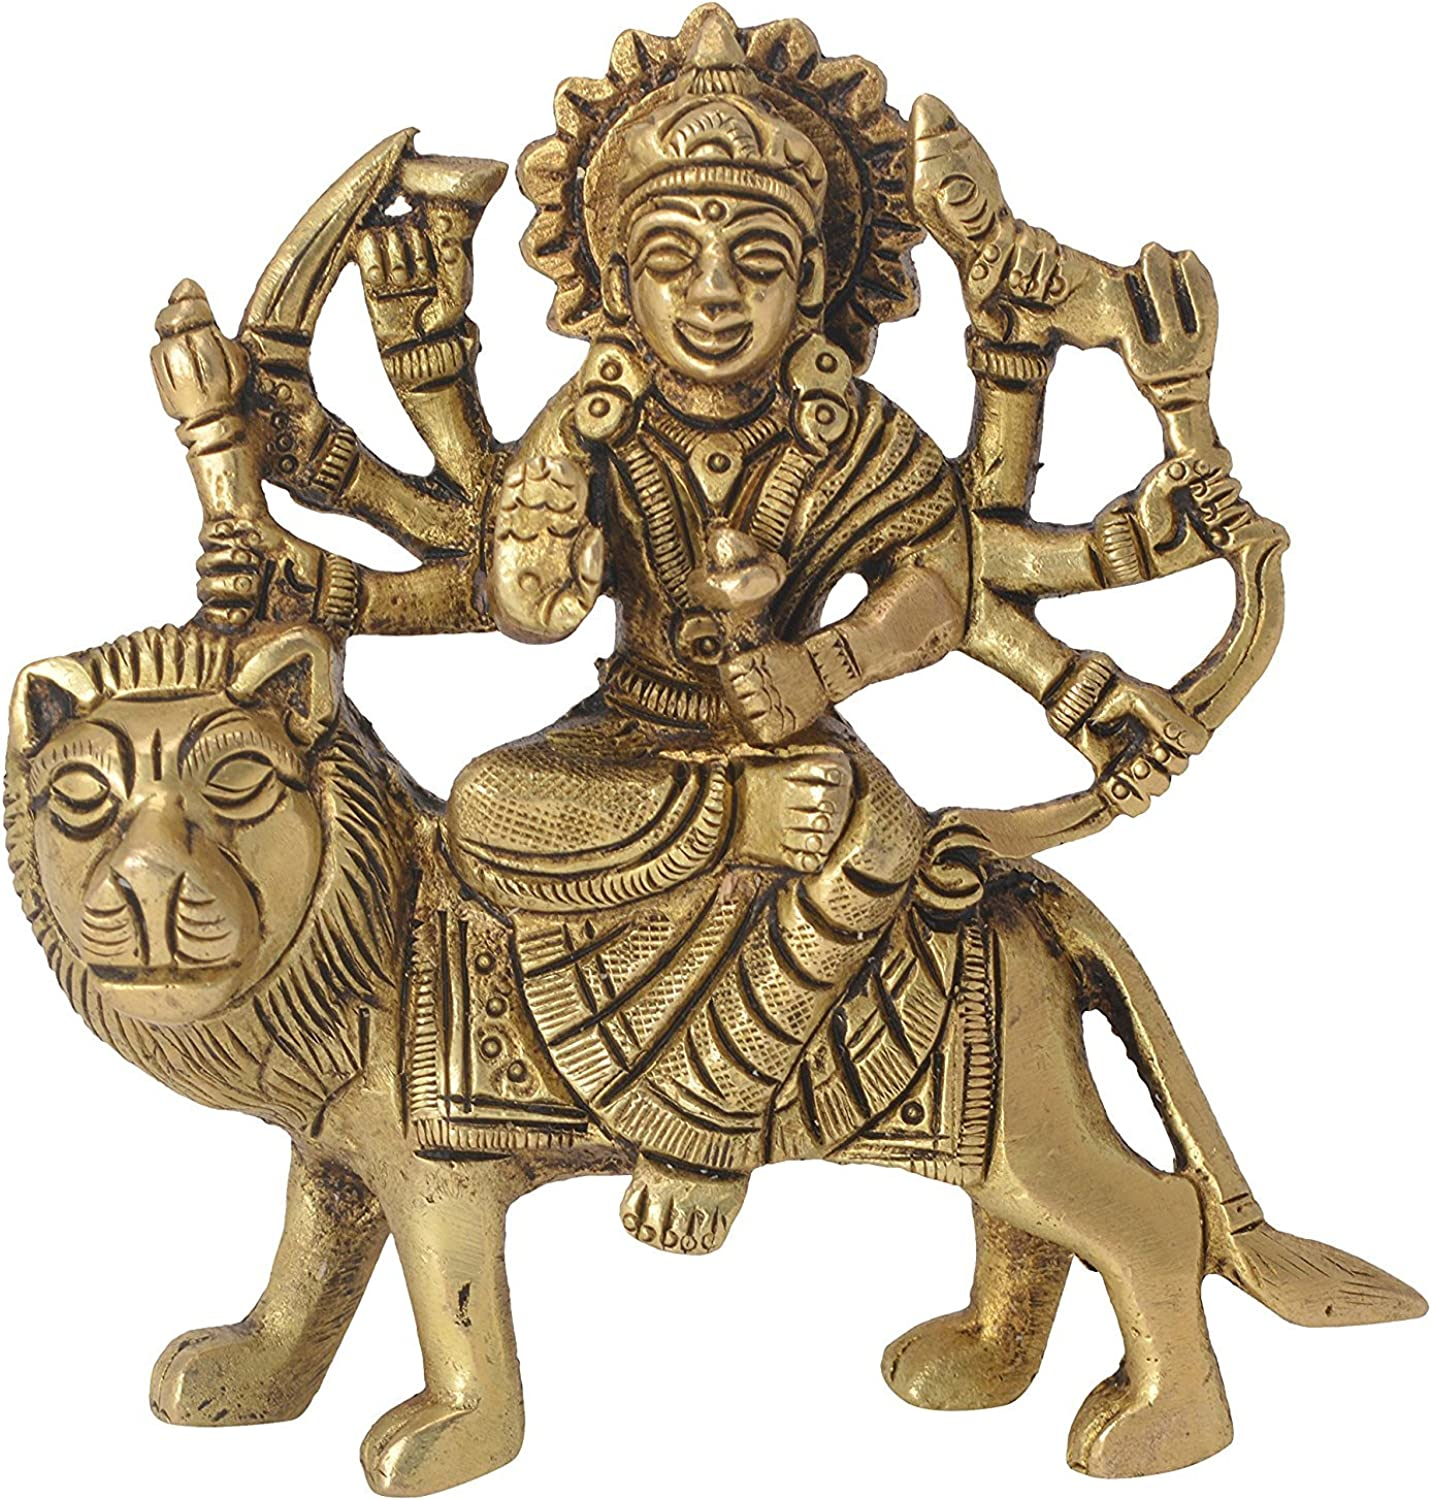 BHARAT HAAT VZI301 Goddess of Ambe Maa Decorative Statue